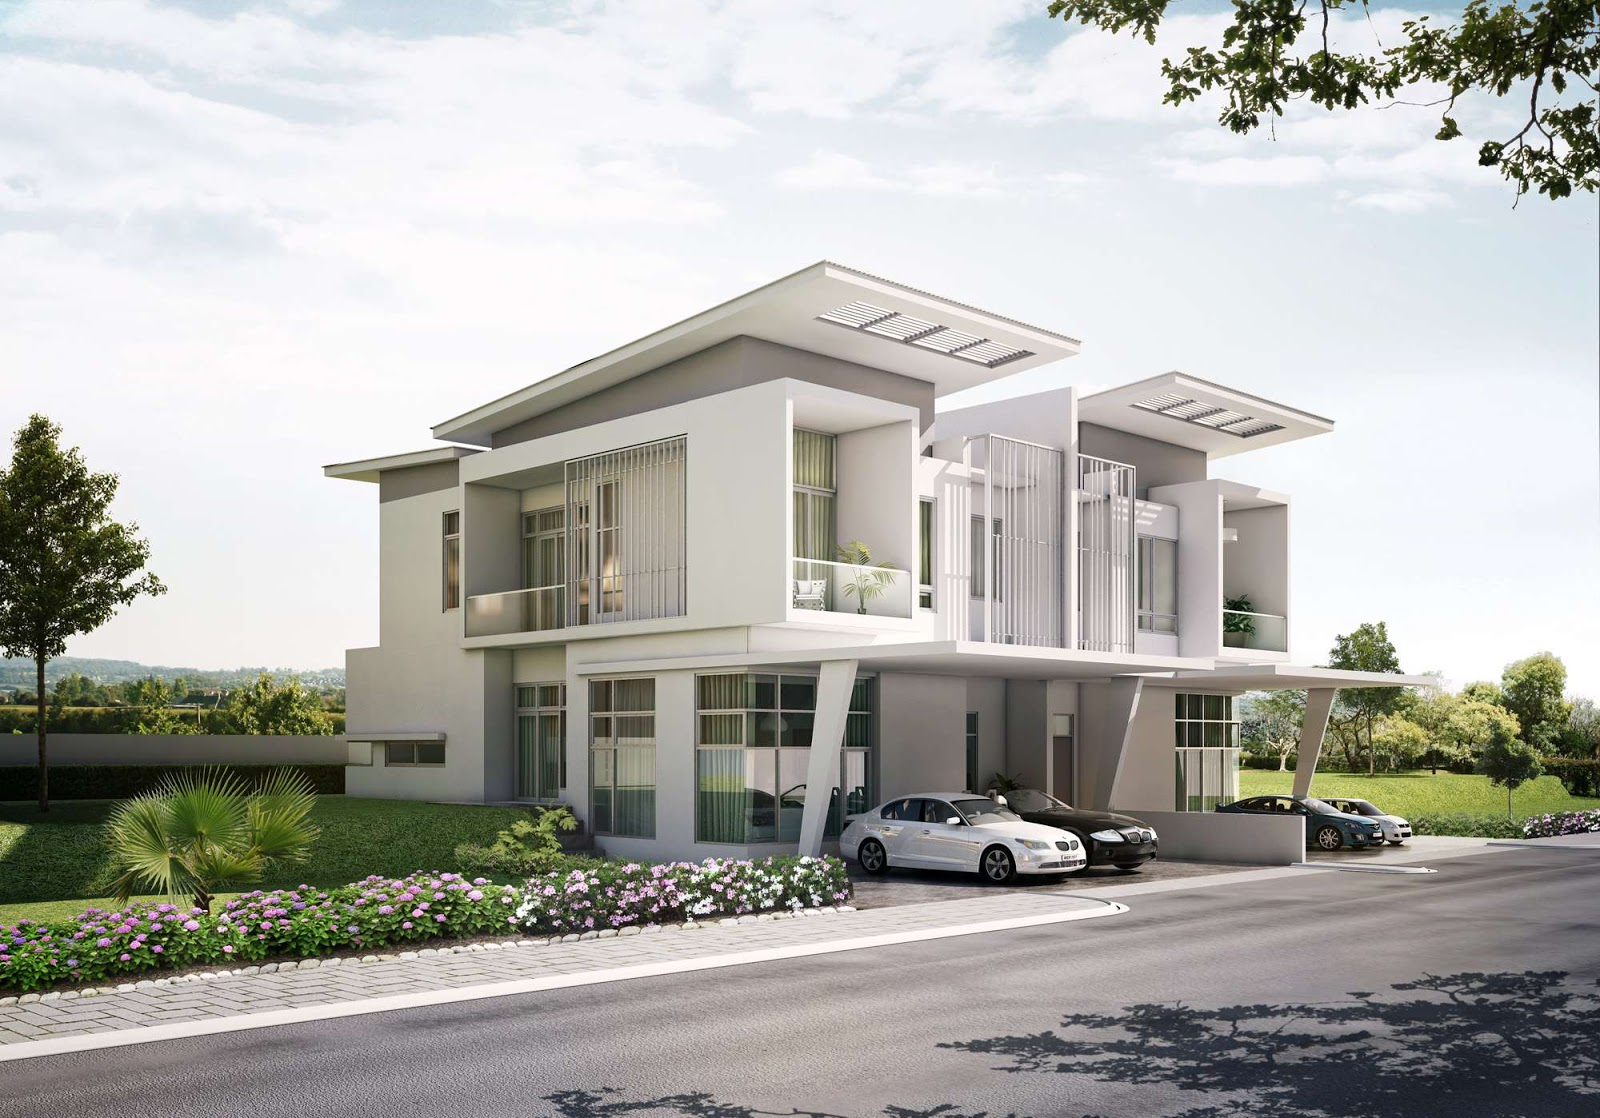 home design latest: Singapore modern homes exterior designs.